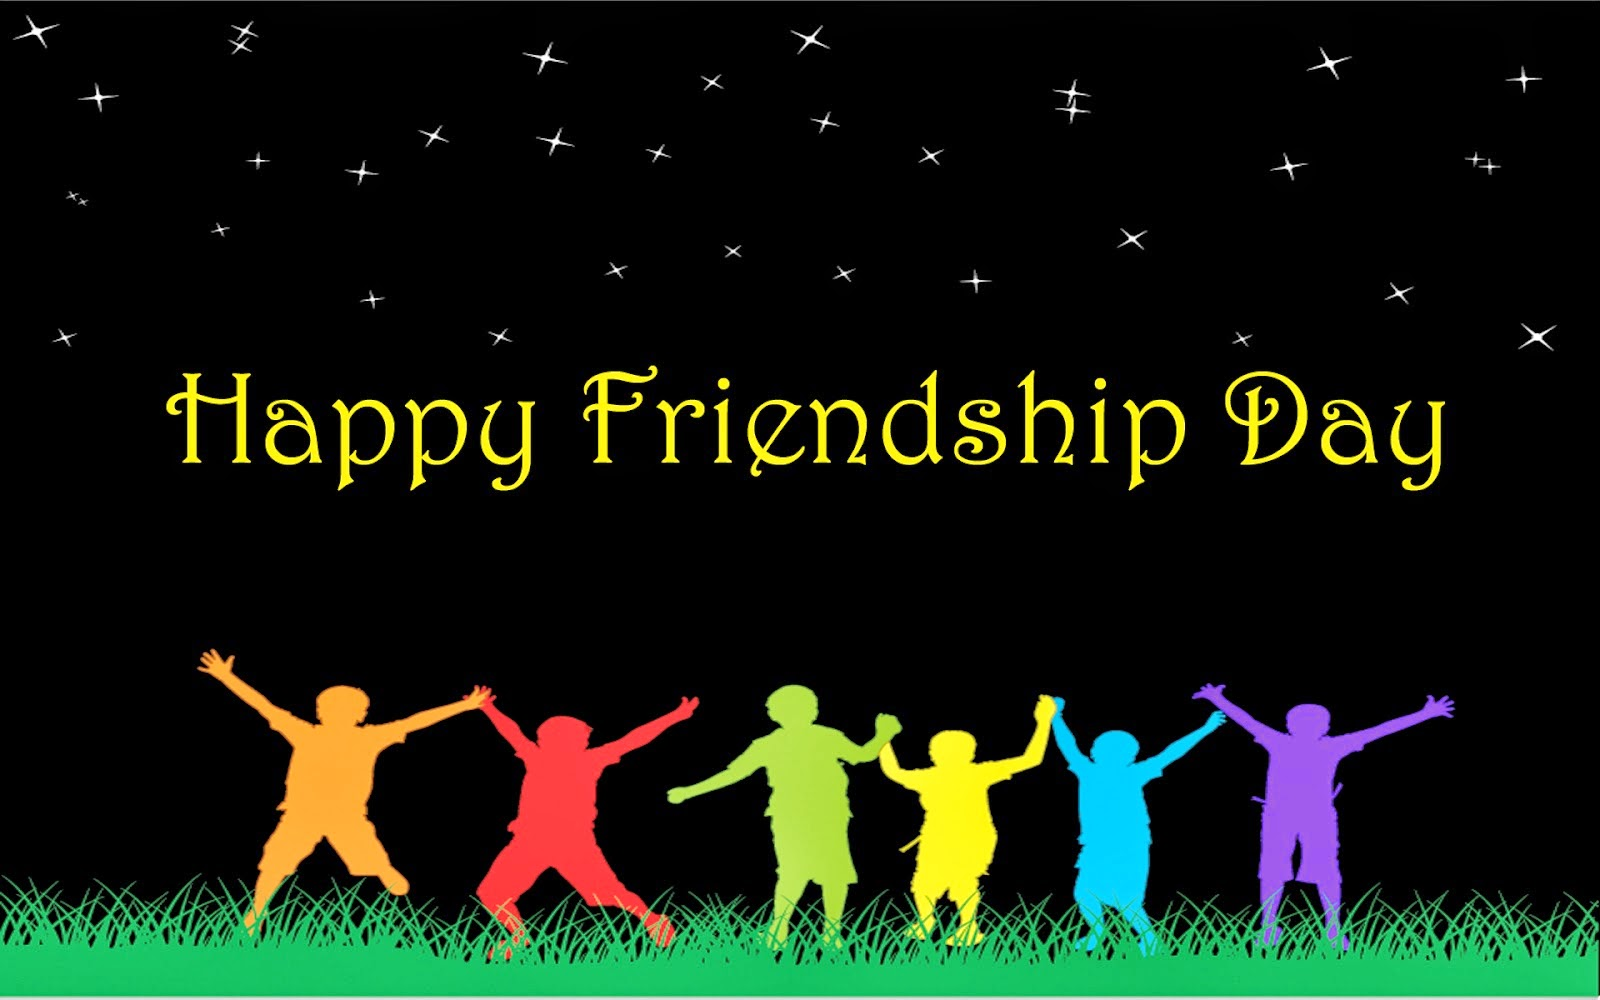 Happy Friendship Day Images HD Wallpapers Photos Pics For Whatsapp DP 2017